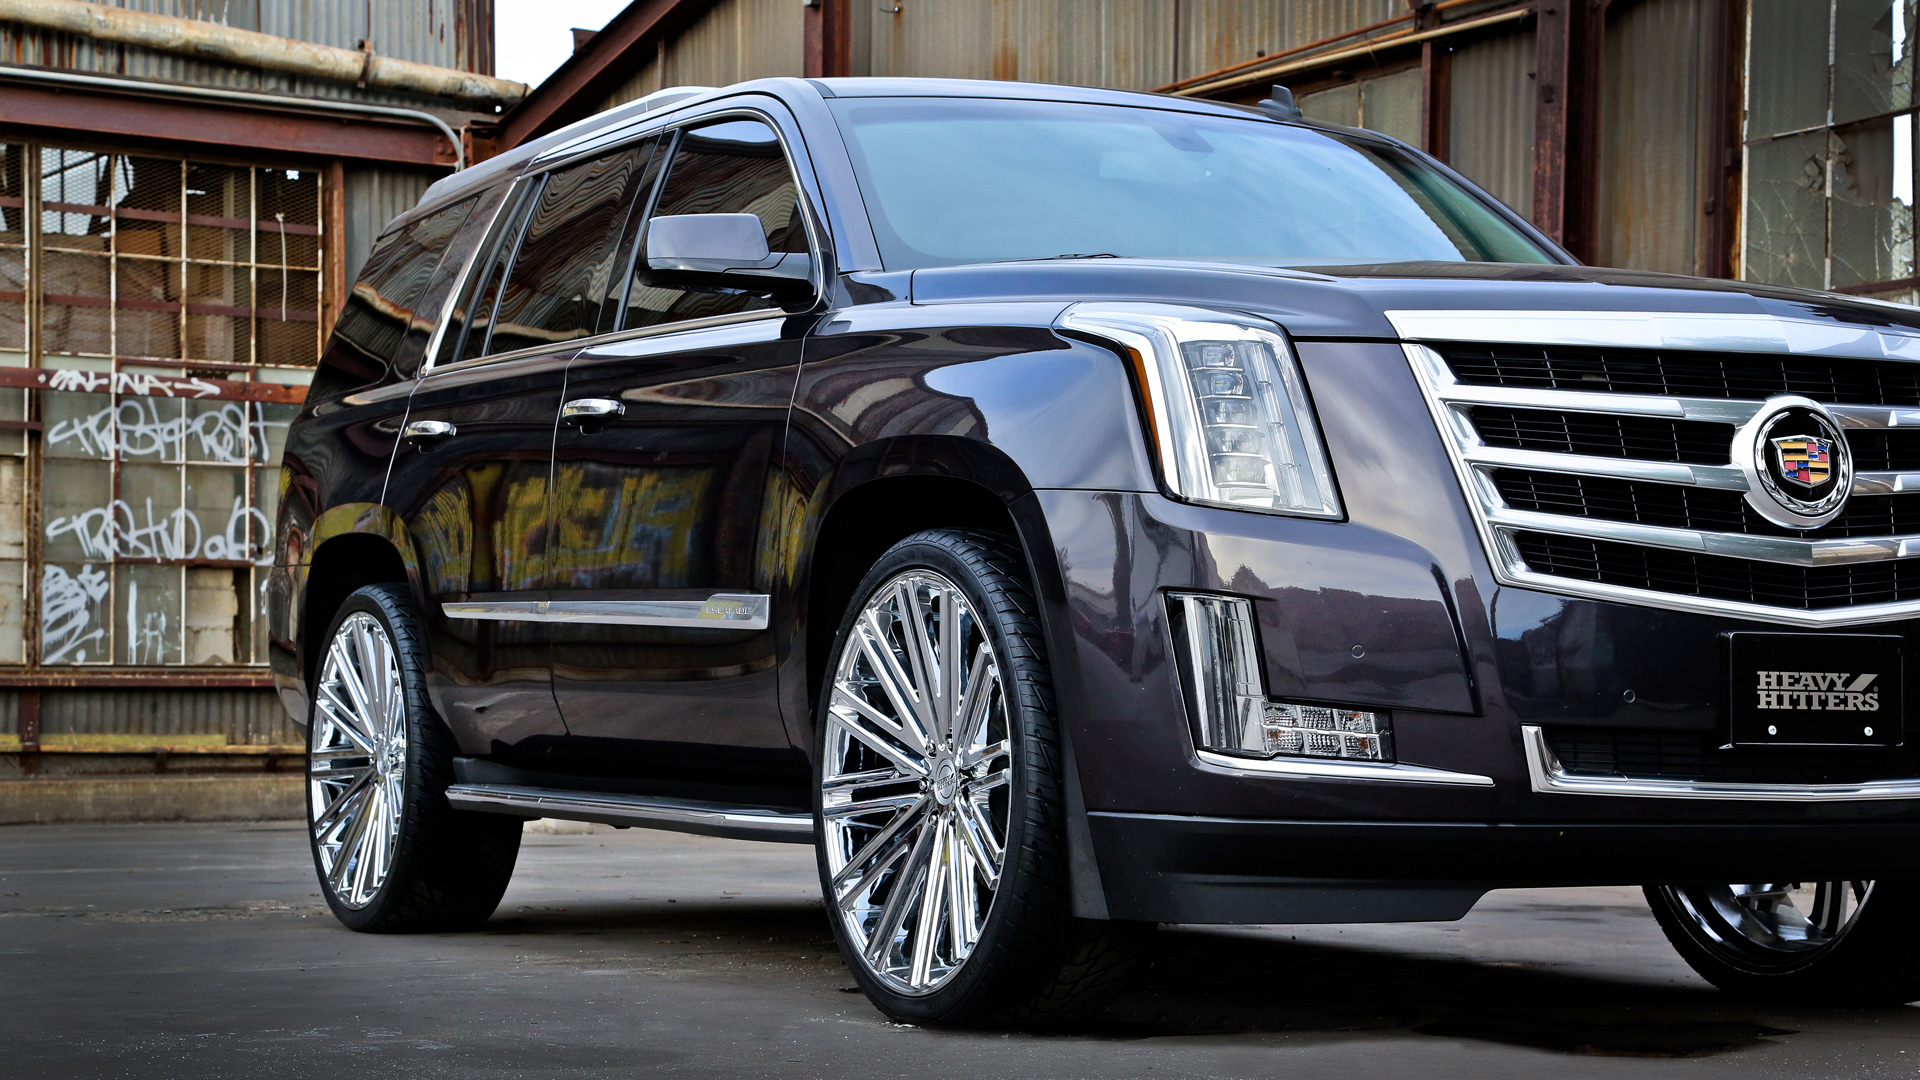 stella miaim cadillac com rims hollywood chrome wheels youtube watch venice cts dubsandtires